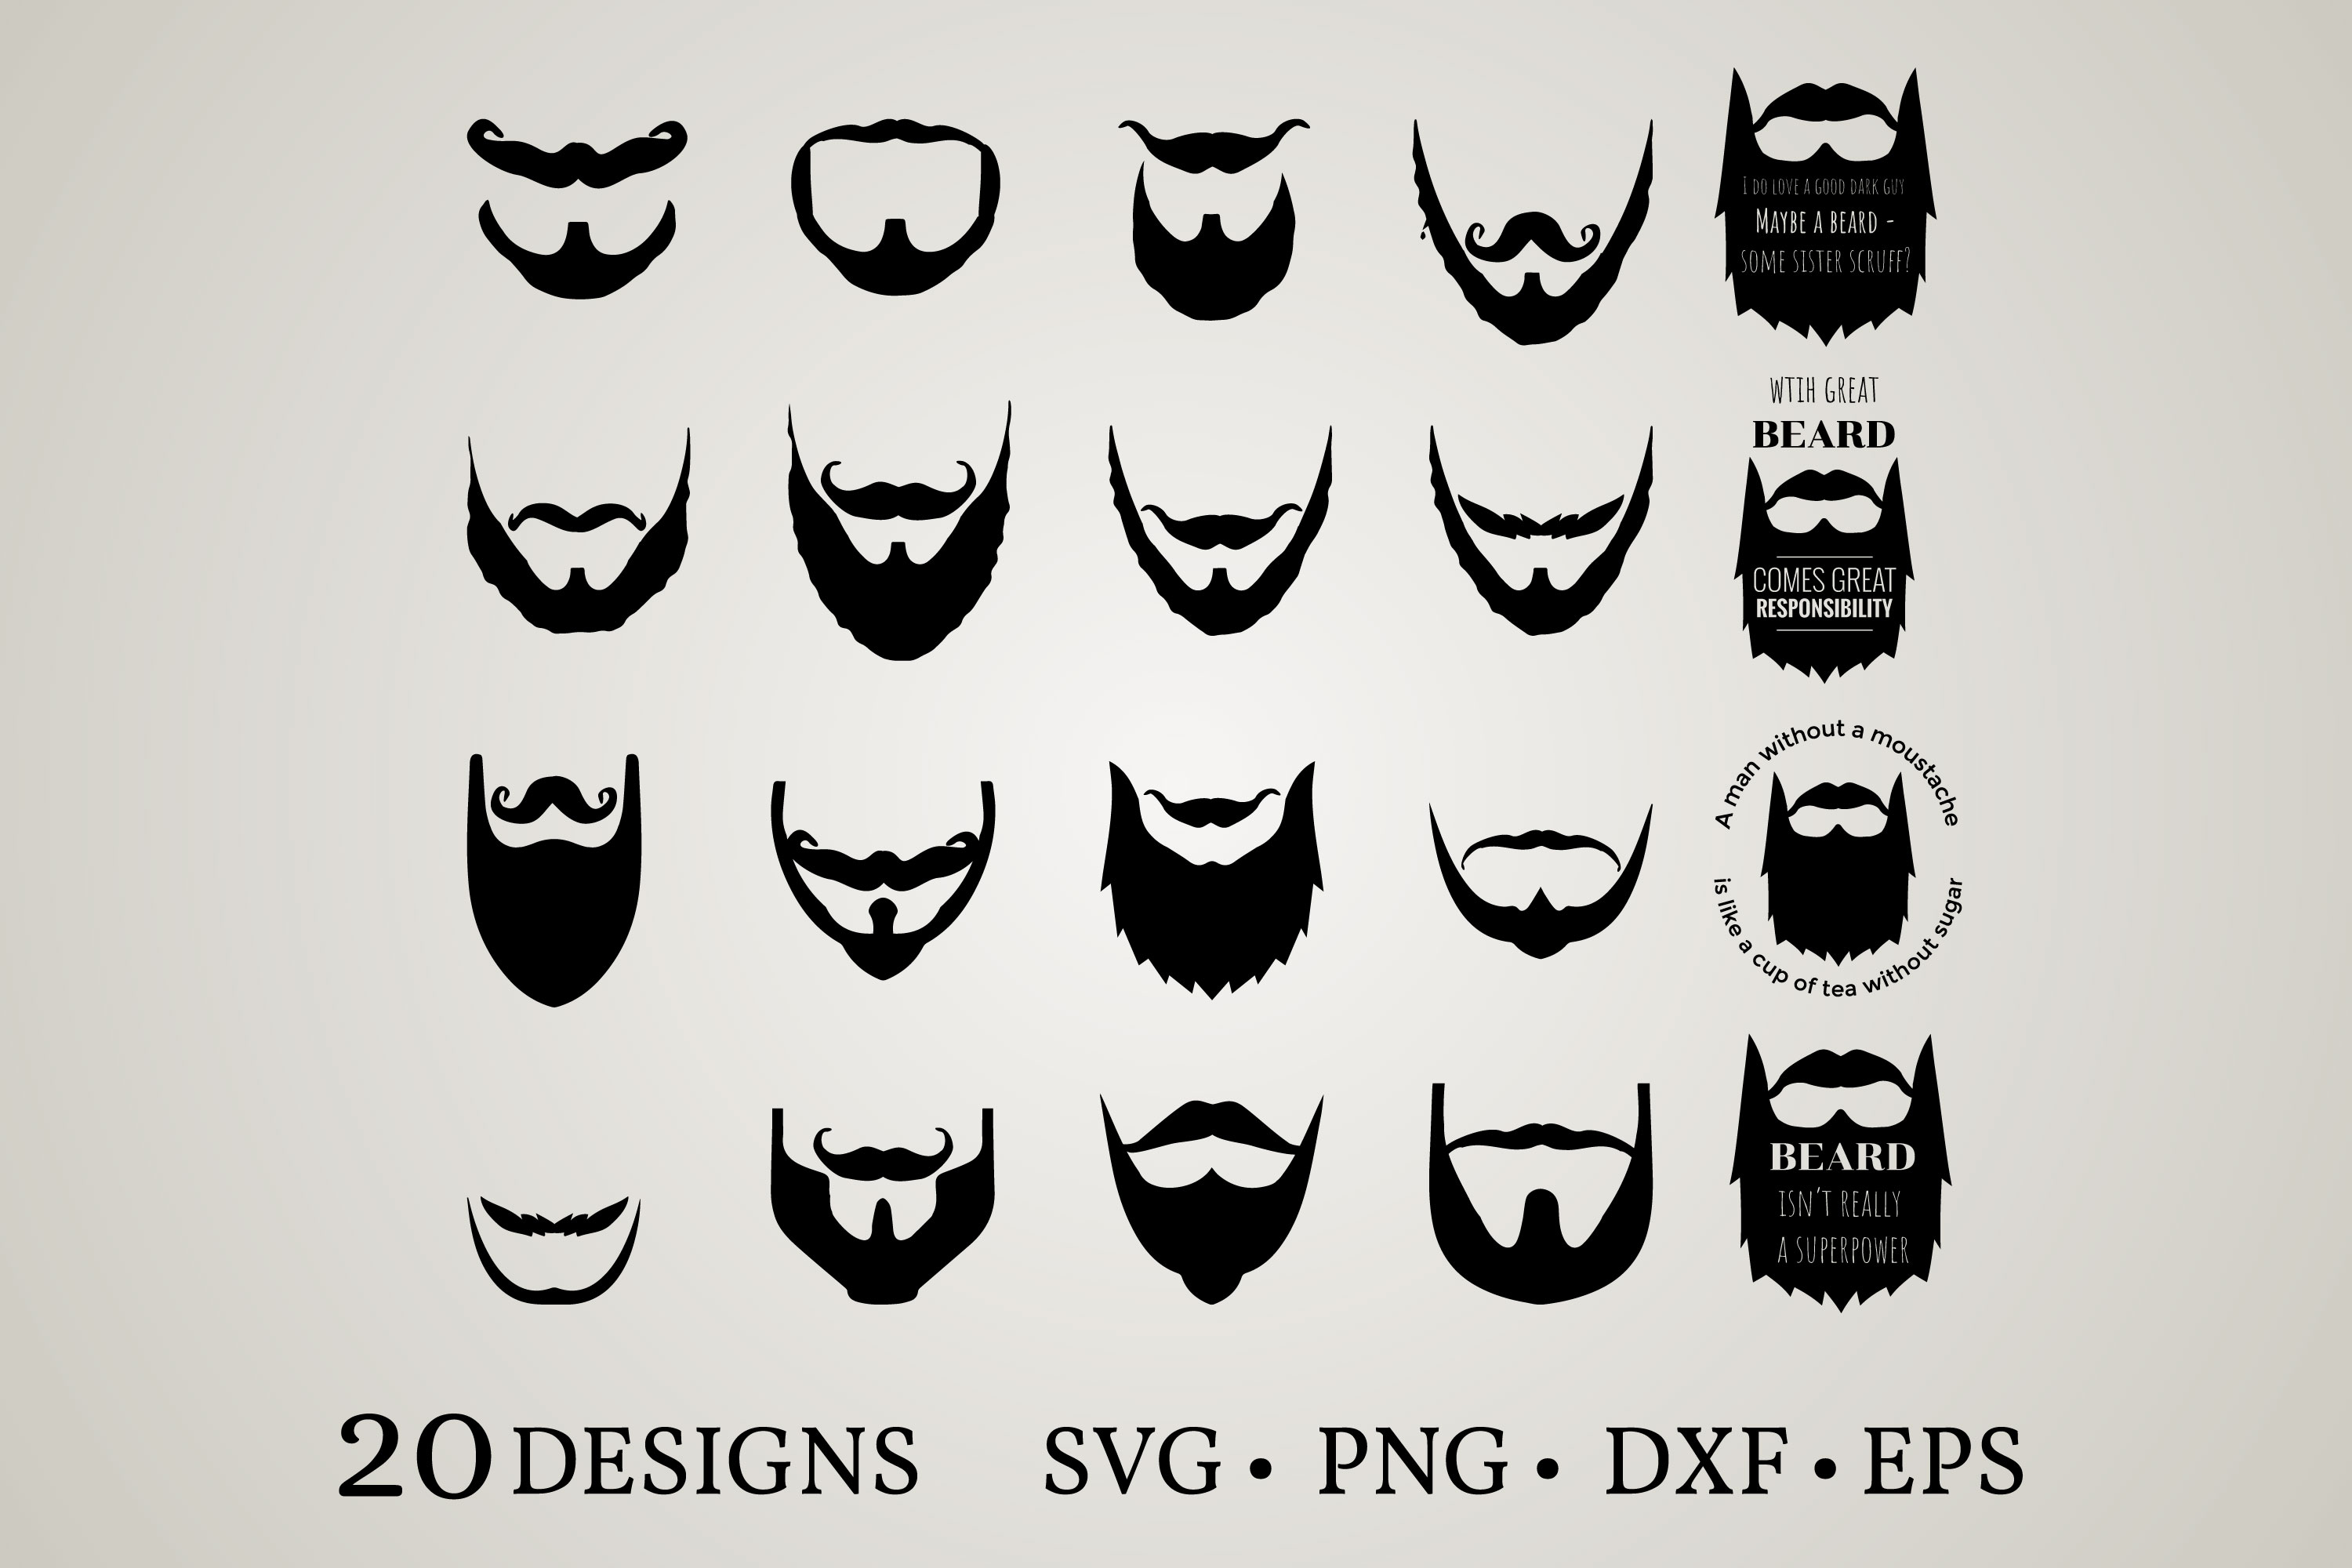 Download Free Beard Bundle Graphic By Euphoria Design Creative Fabrica for Cricut Explore, Silhouette and other cutting machines.